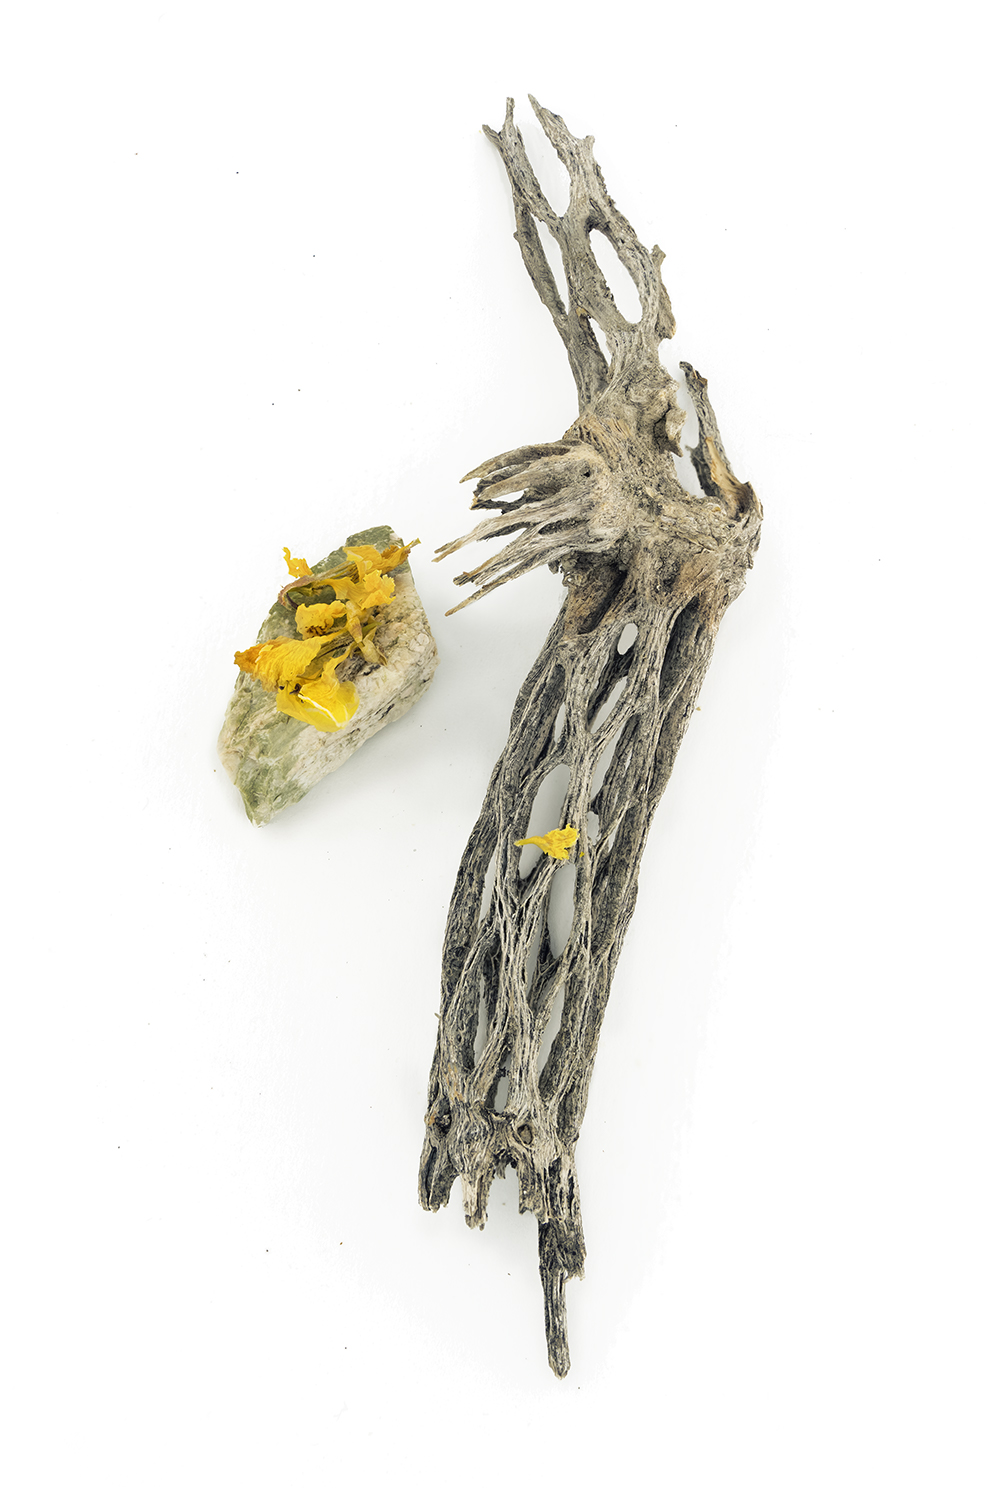 Cylindropuntia with yellow flowers (Palo Verde)